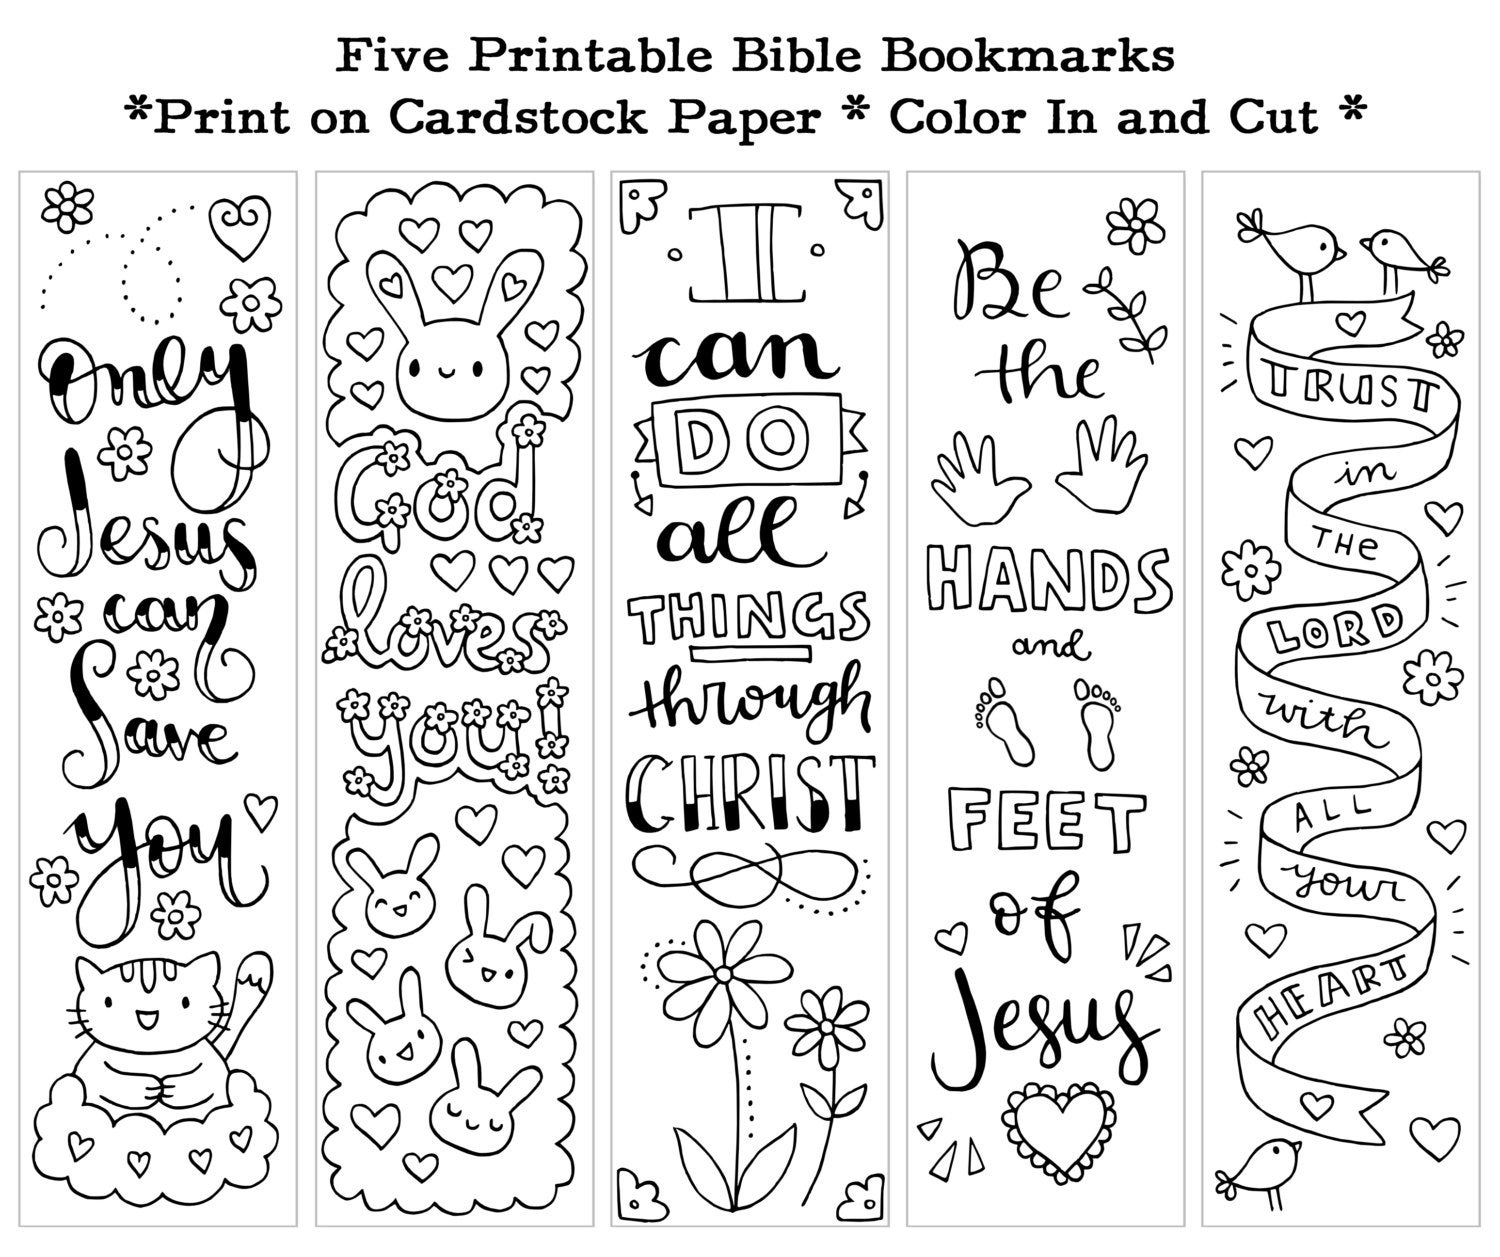 coloring bible verse bookmark 8 printable christmas coloring bookmarks with bible verses coloring bible verse bookmark